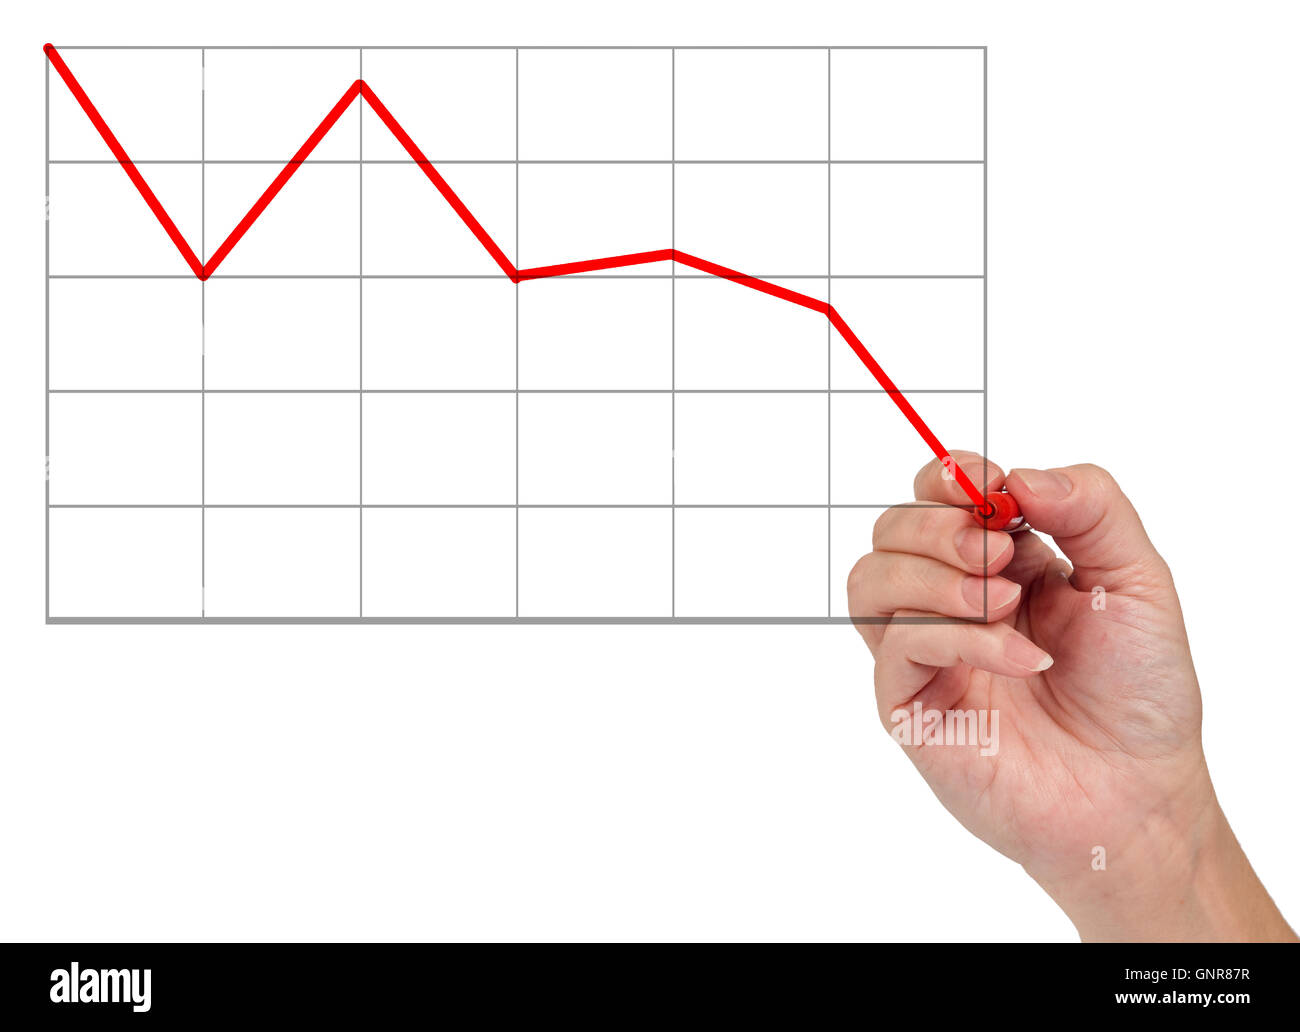 Hand Showing Decline In Market - Stock Image